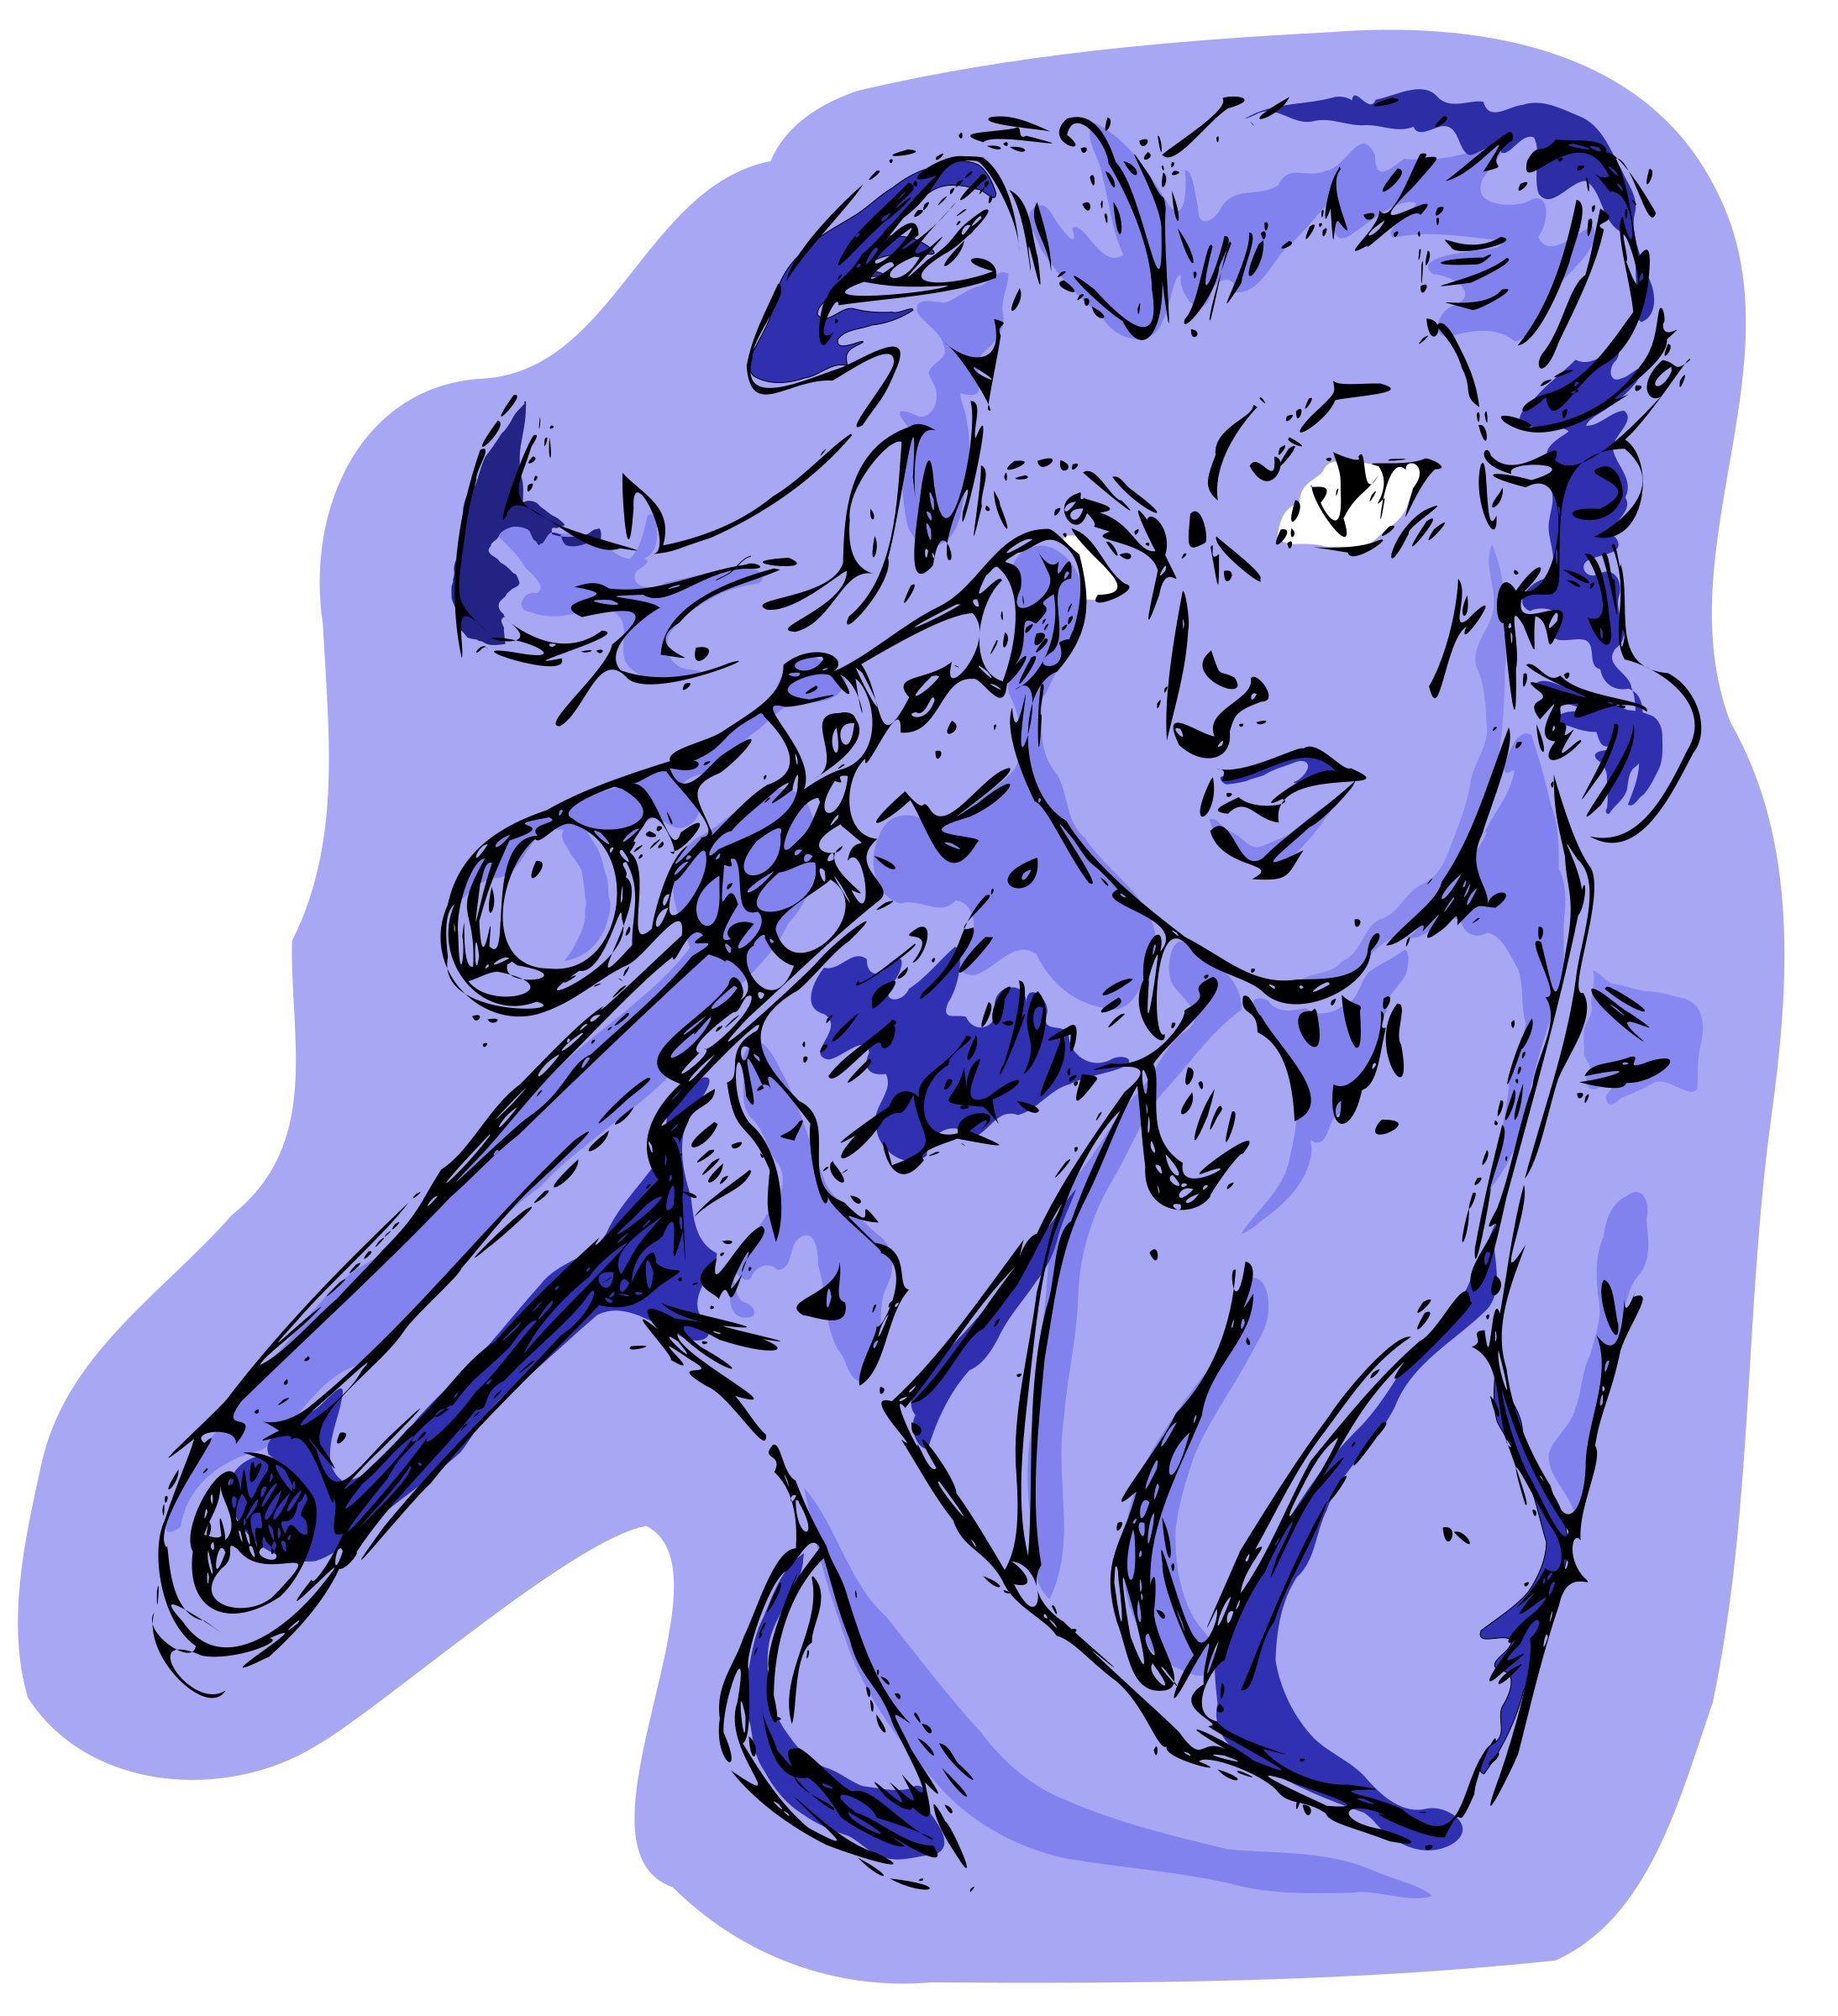 https://openclipart.org/image/2400px/svg_to_png/218369/Evil-Kira.png